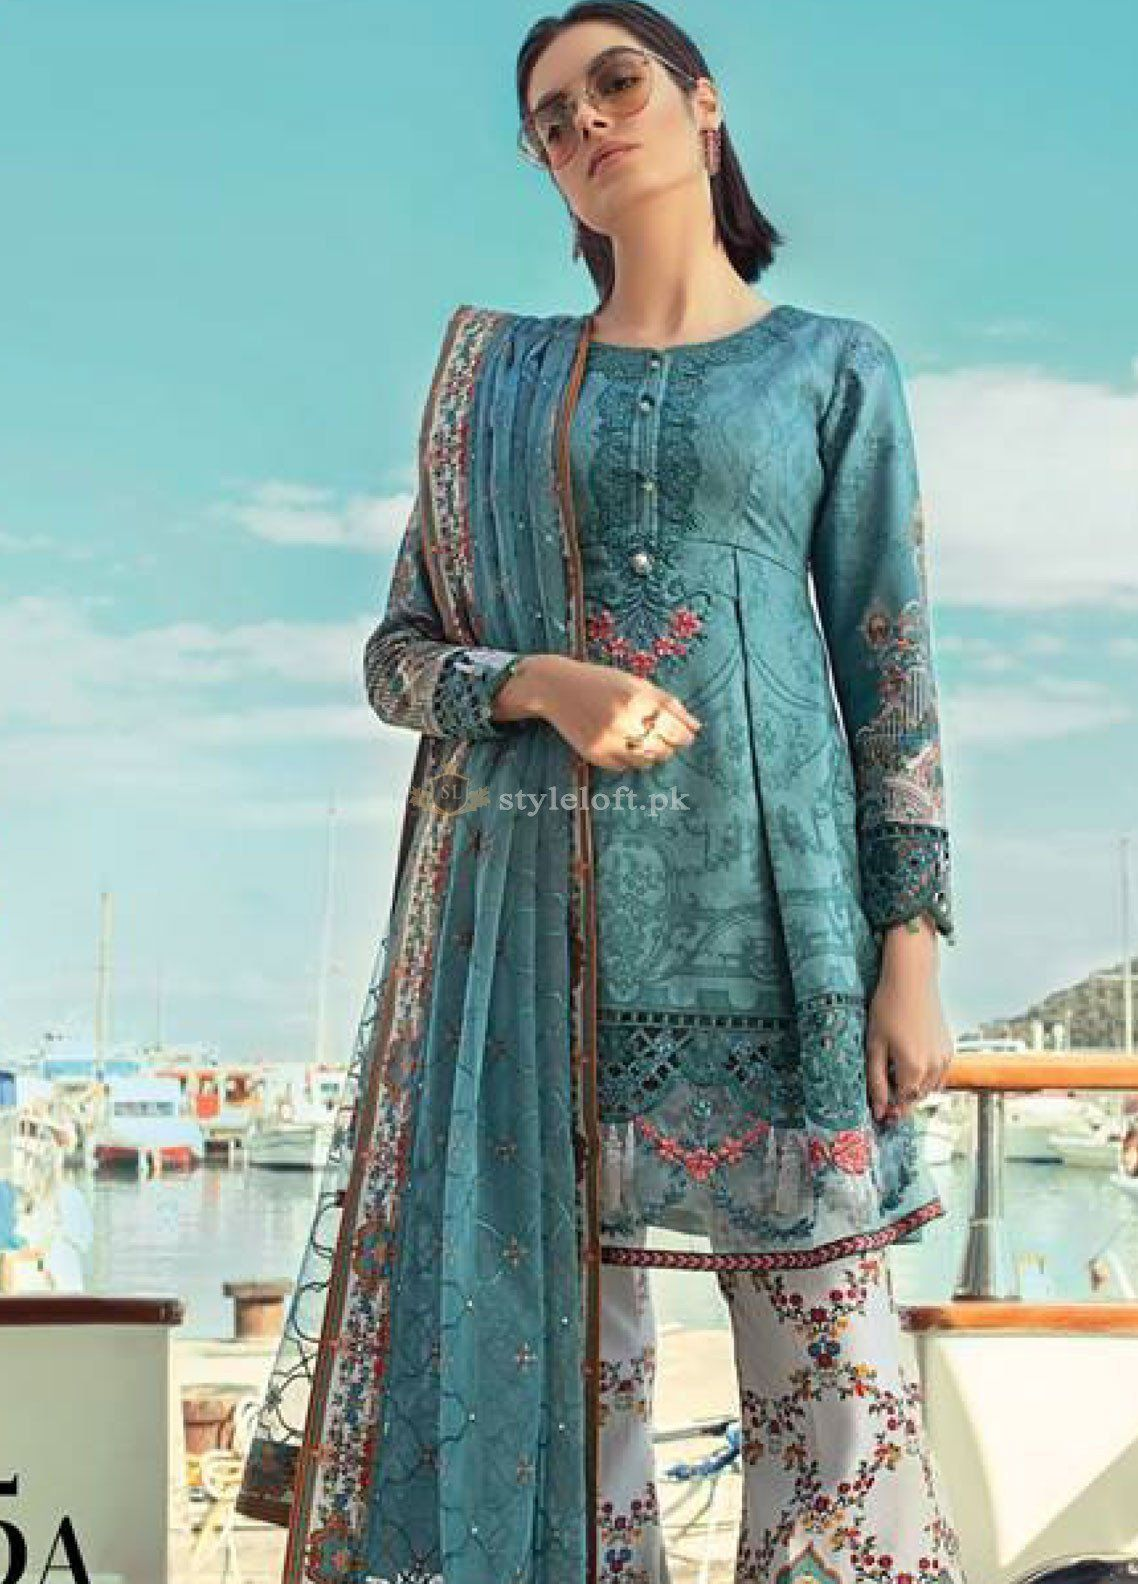 023dc9d428 Maria B Embroidered Lawn Collection 2019 Unstitched 3 Piece Suit ...